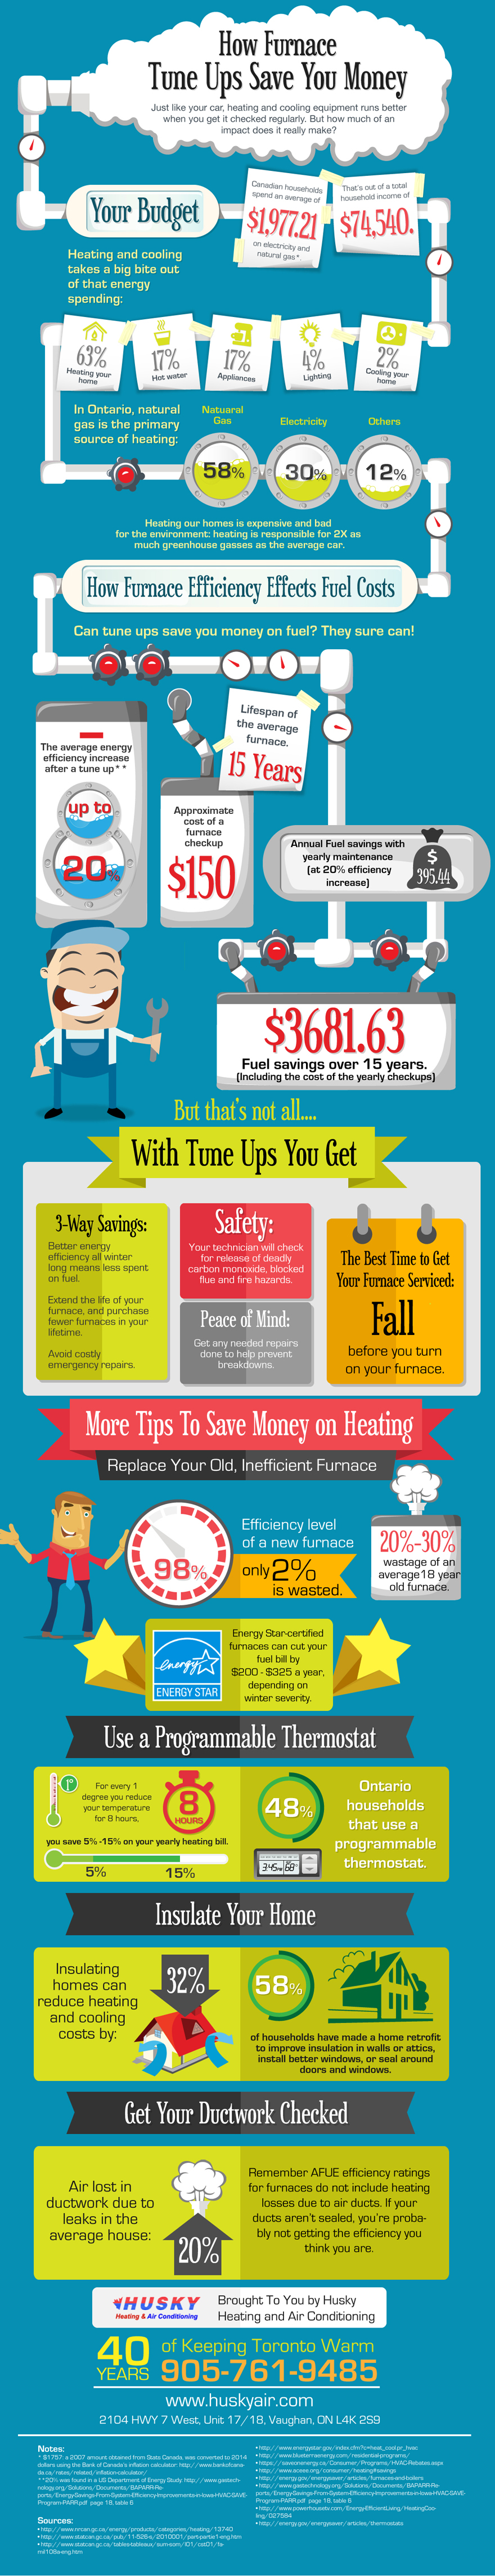 How Furnace Tune Ups Save You Money